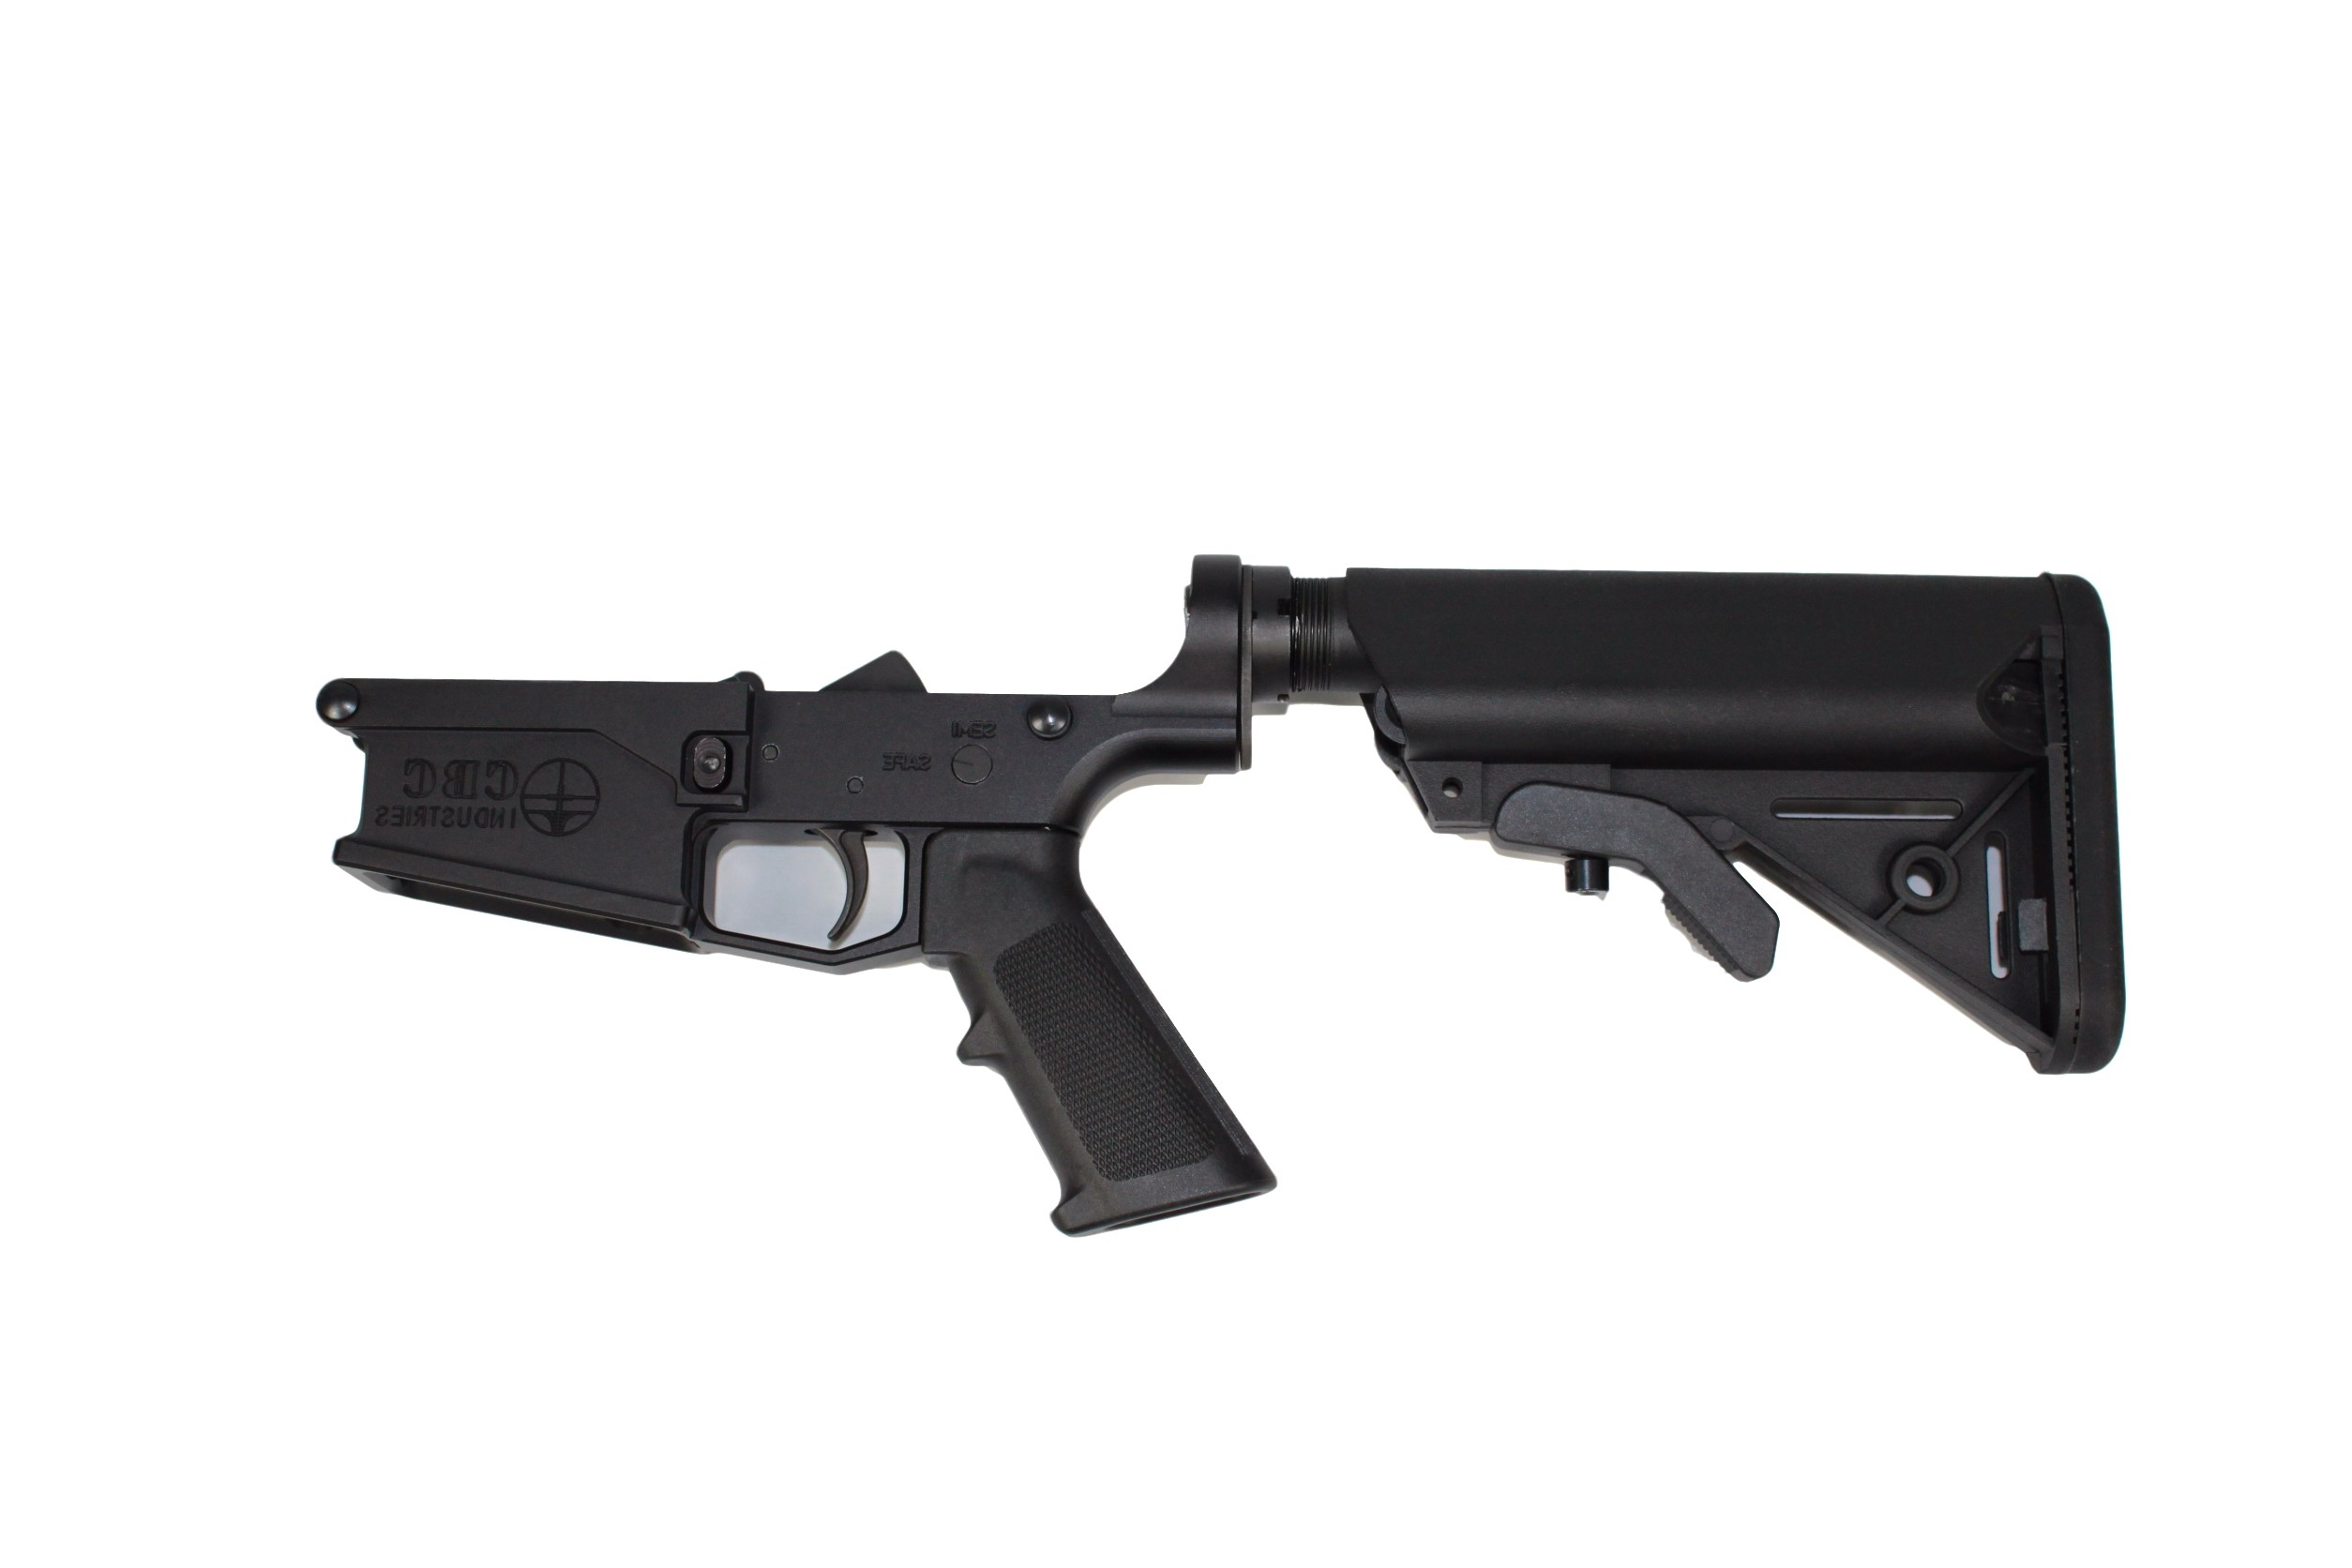 ar 308 cbc complete lower receiver with sopmod buttstock